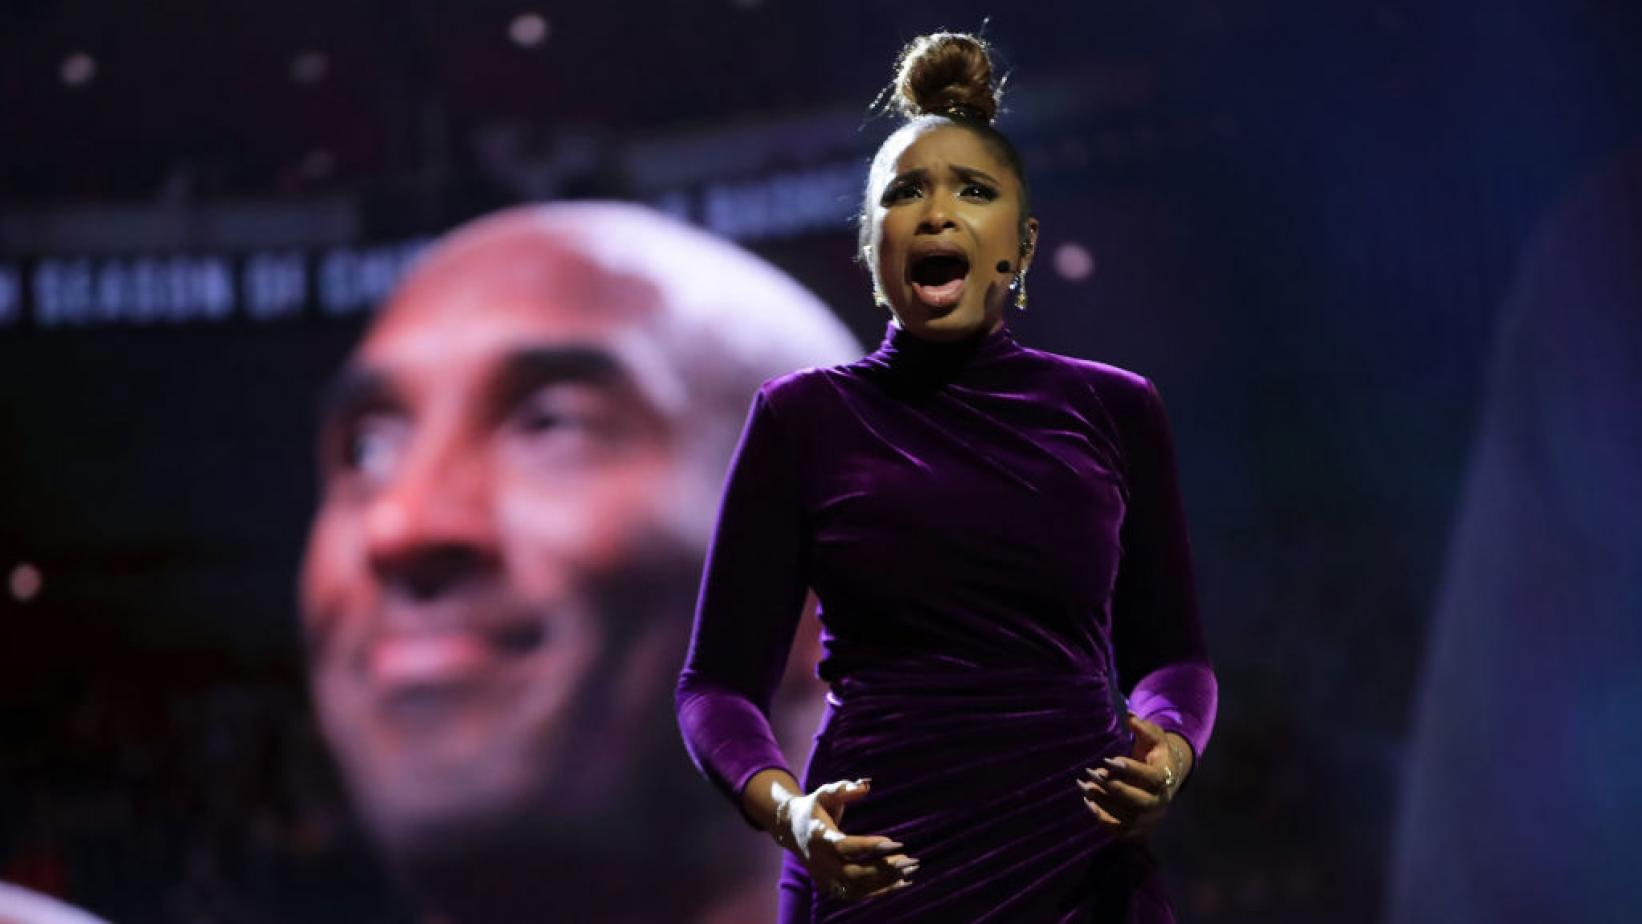 Jennifer Hudson performs a tribute to Kobe Bryant at the 2020 NBA All-Star Game